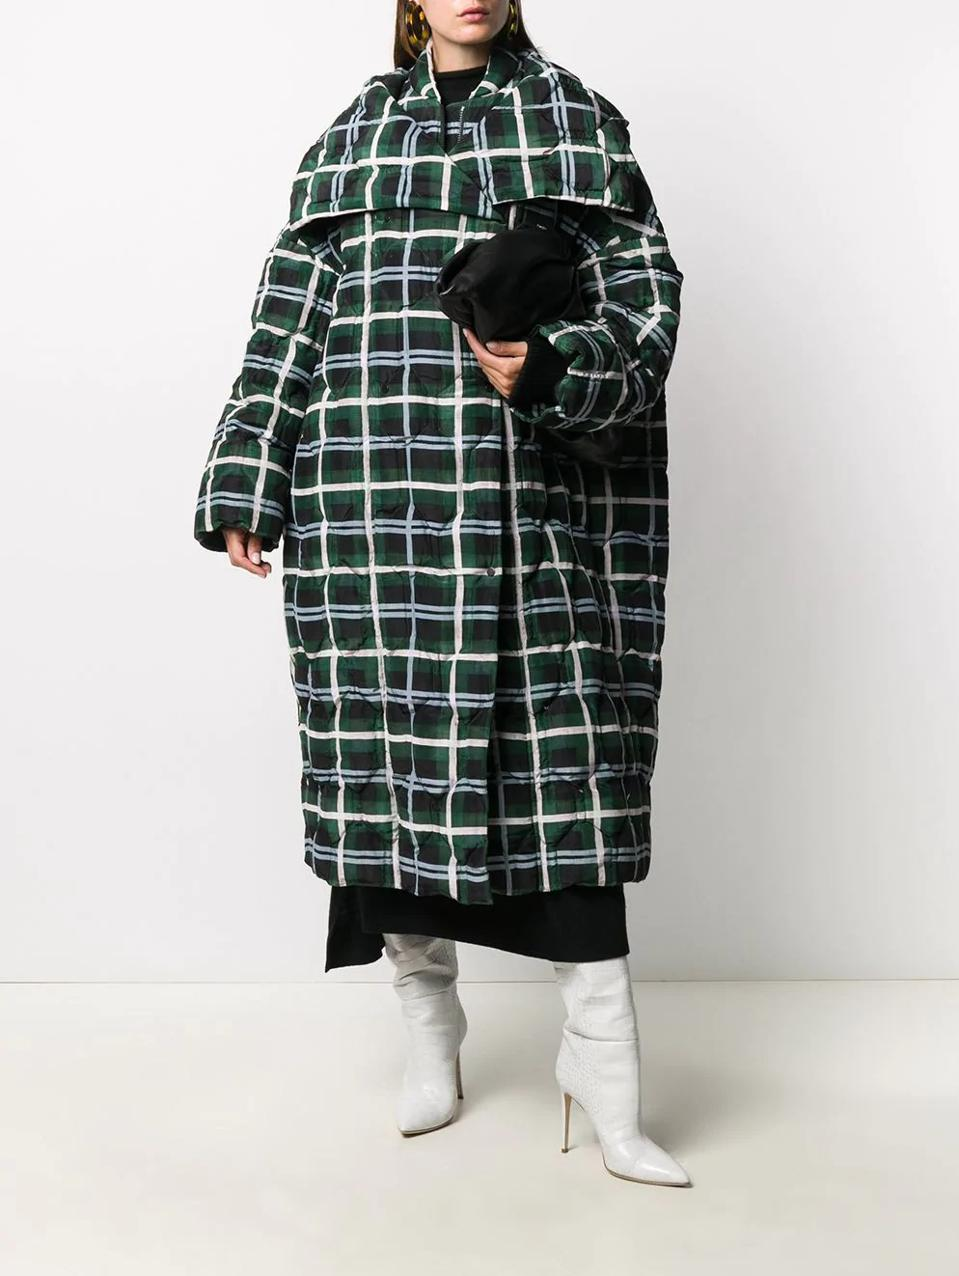 The Oversized Quilted Coat by Christian Wijnants is 100% cotton featuring a plaid check pattern, wide peak lapels and made of positively conscious material widely recognized as being better for the planet.